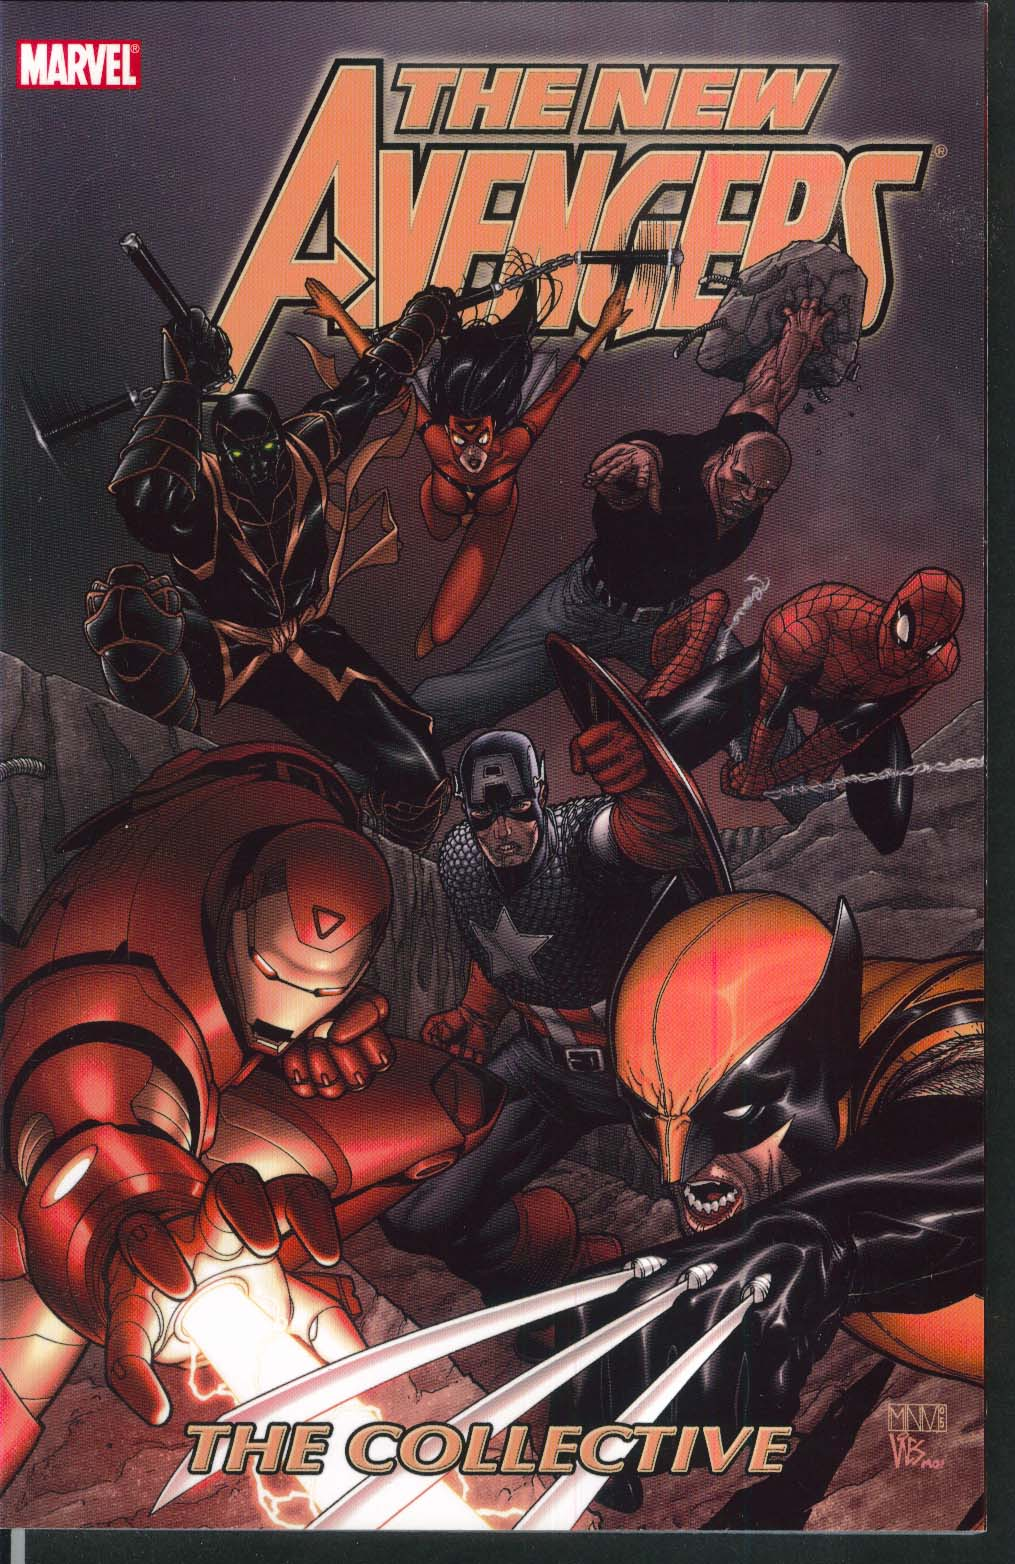 NEW AVENGERS Vol 4 Collective Marvel Graphic Novel 1st Printing 2007